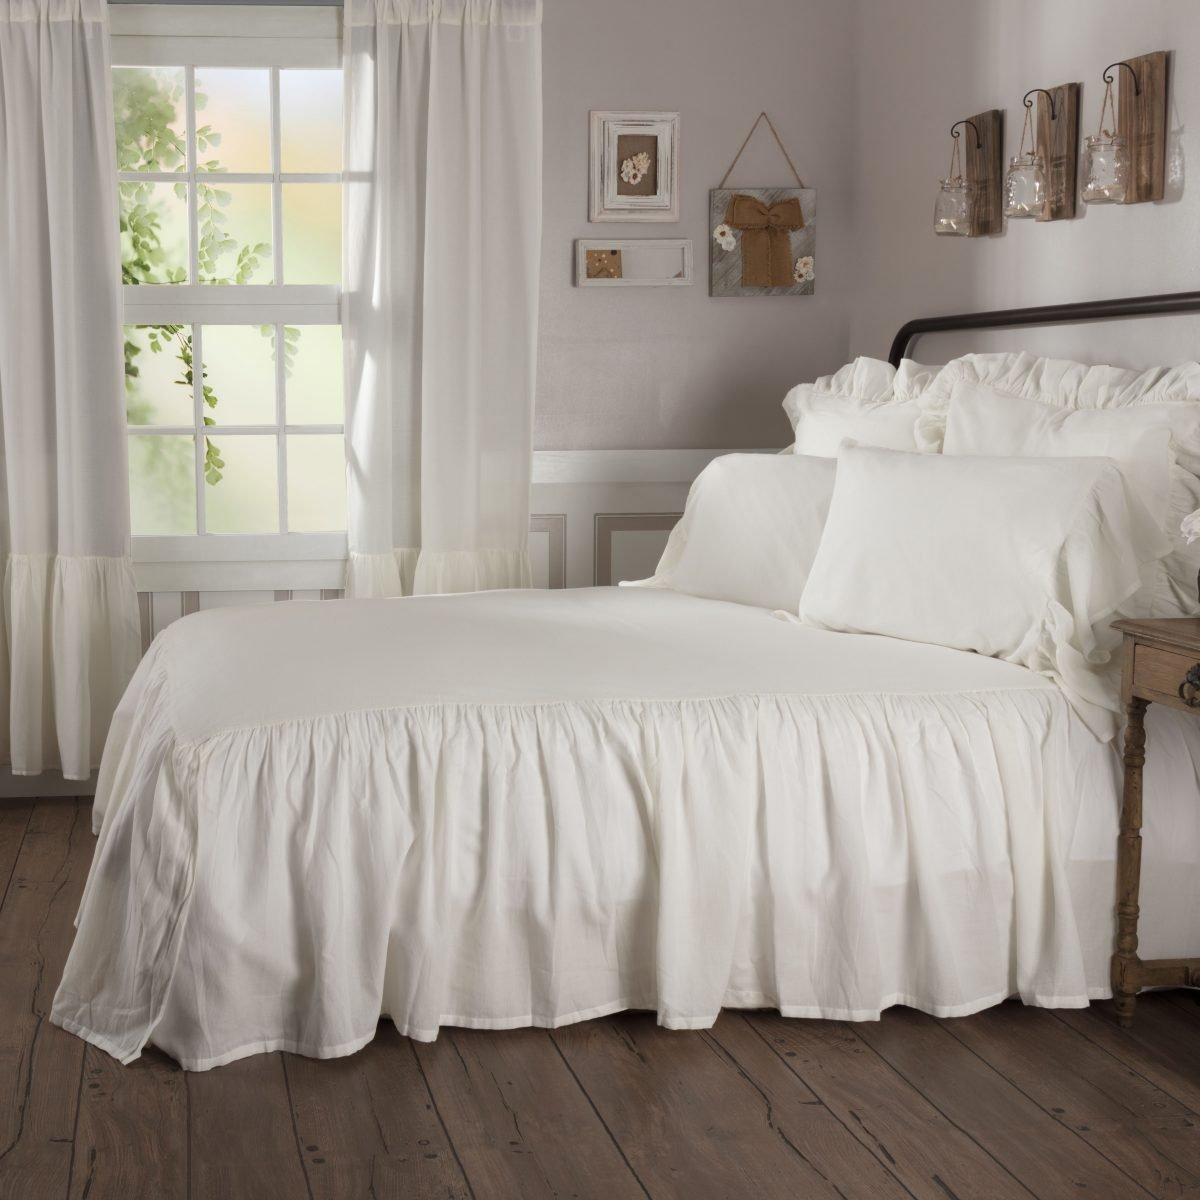 Piper Classics Sophia Ruffled Bedspread, KIng Size, HIgh Skirt on 3 Sides, Antique White, Lightweight, Farmhouse Style Bedding